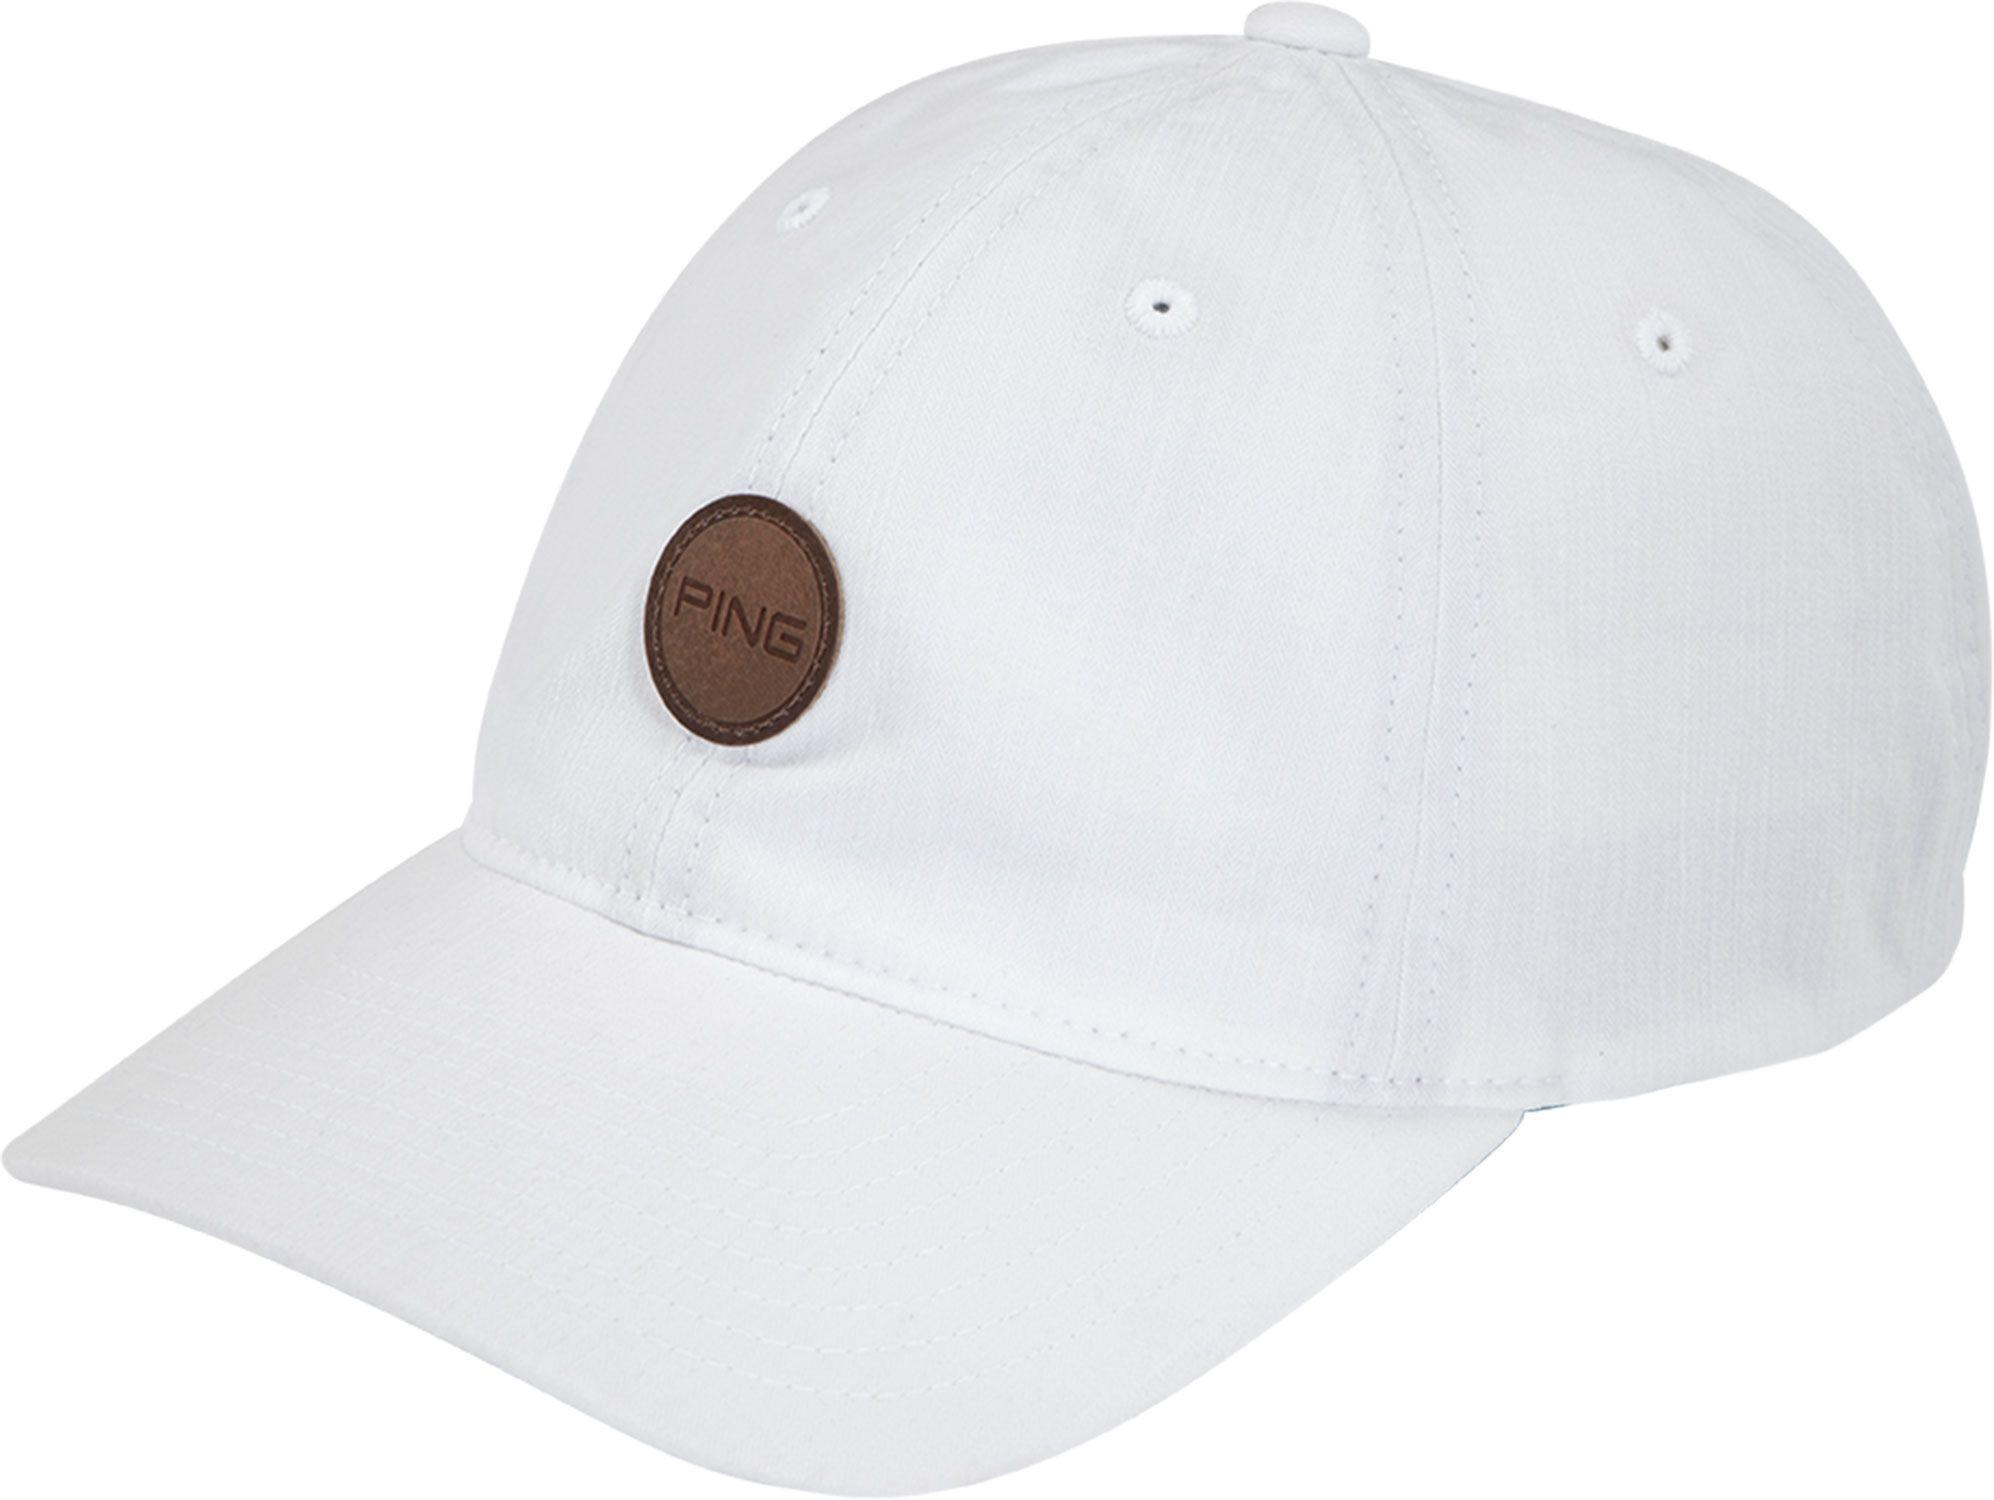 Lyst - Ping Fairway Golf Hat in White for Men 6a93ce7efba